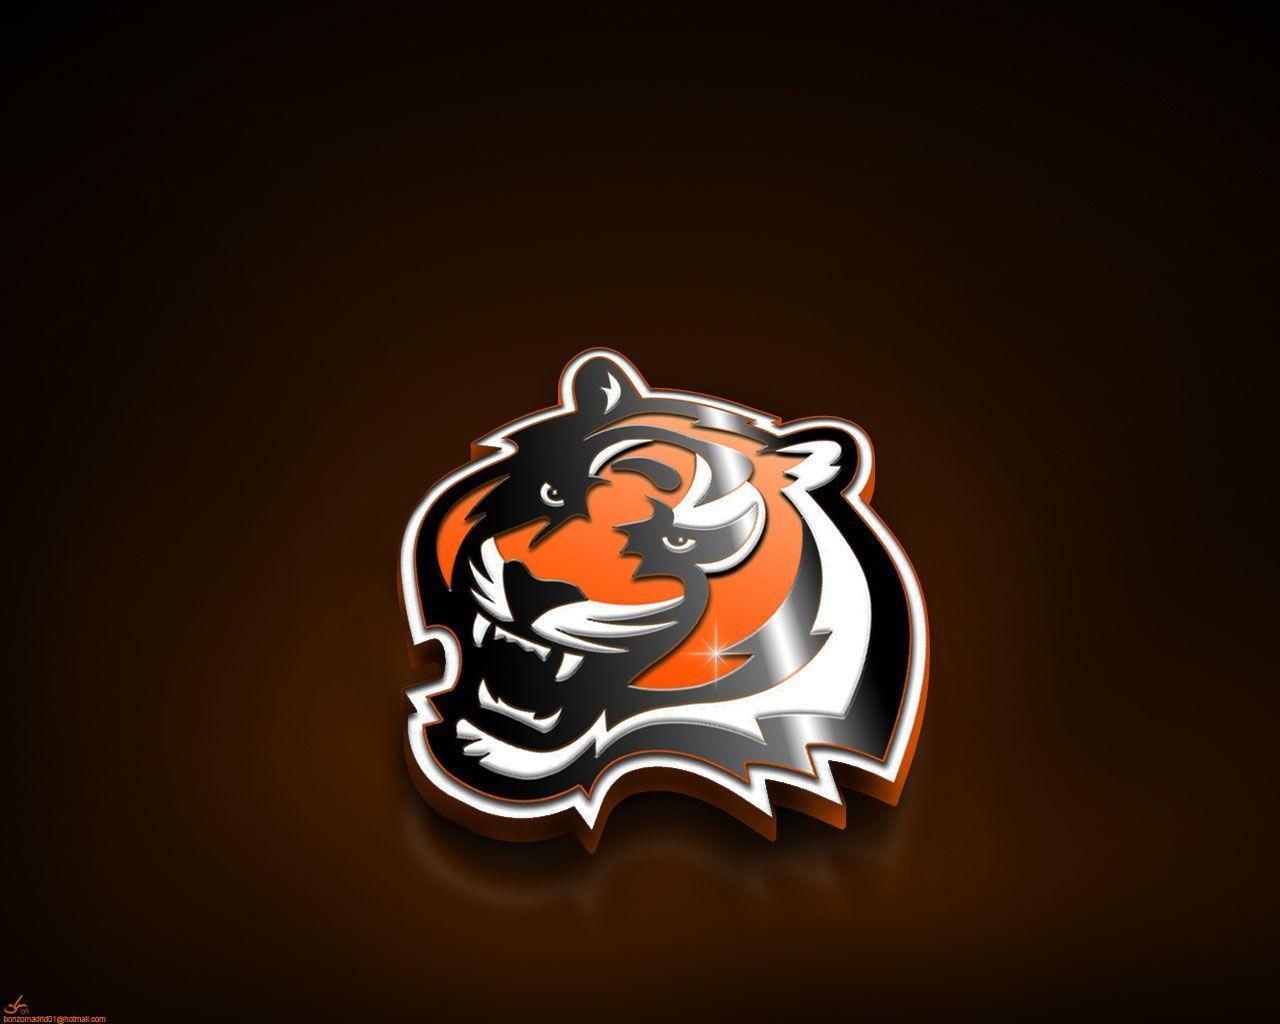 Cincinnati Bengals Logo Patch #13176) wallpaper - wallatar.